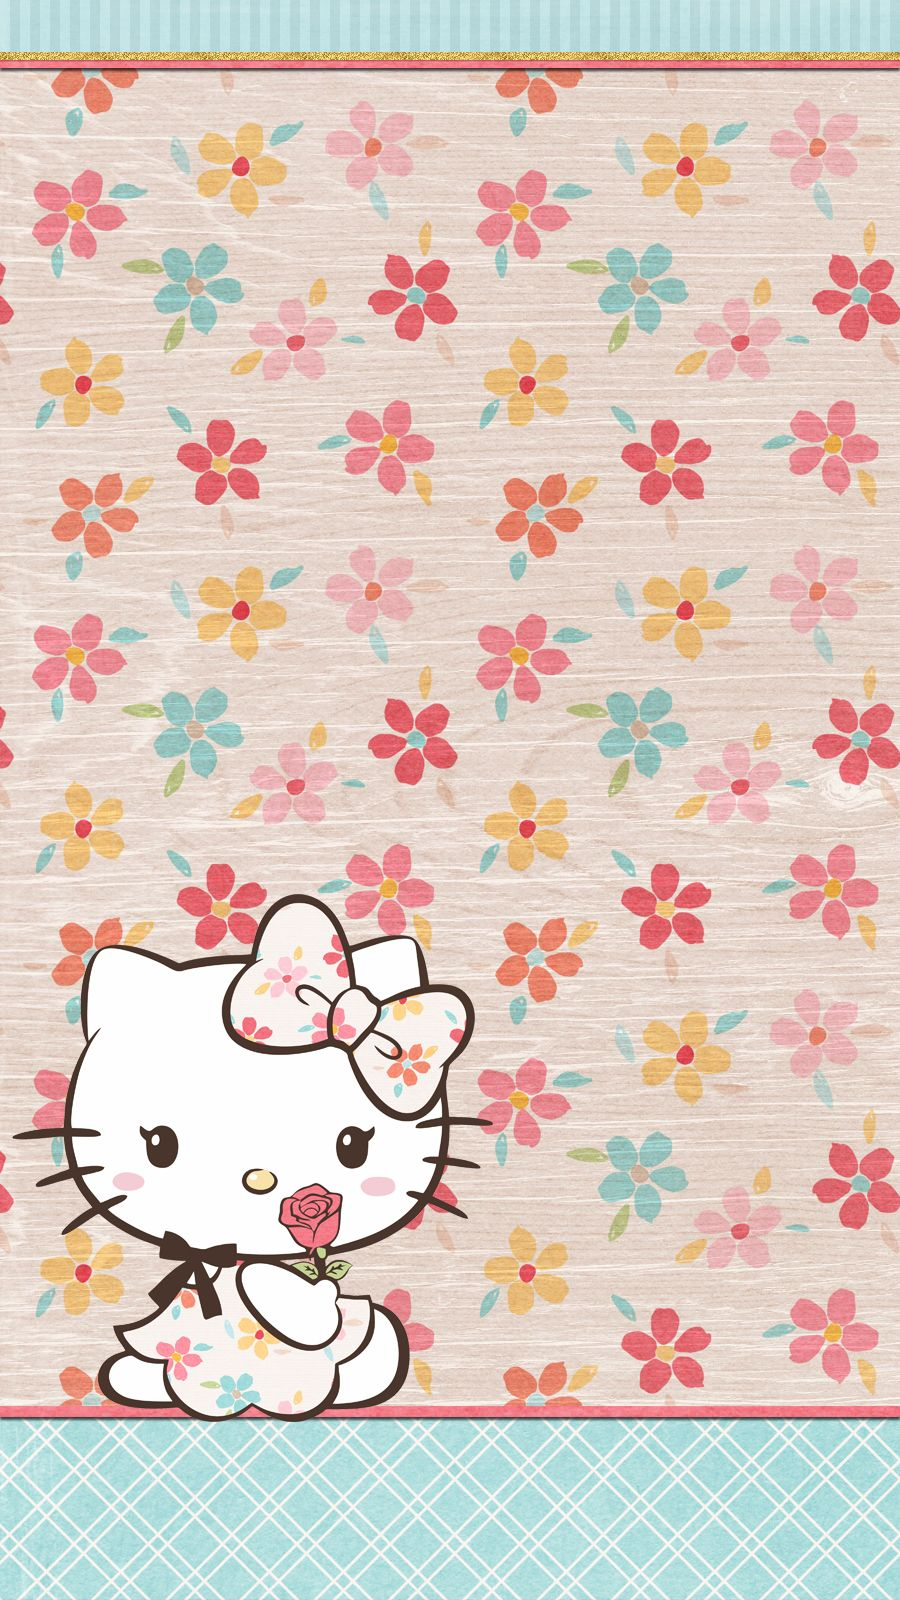 Spring06 Jpg 900 1600 Hello Kitty Wallpaper Hello Kitty